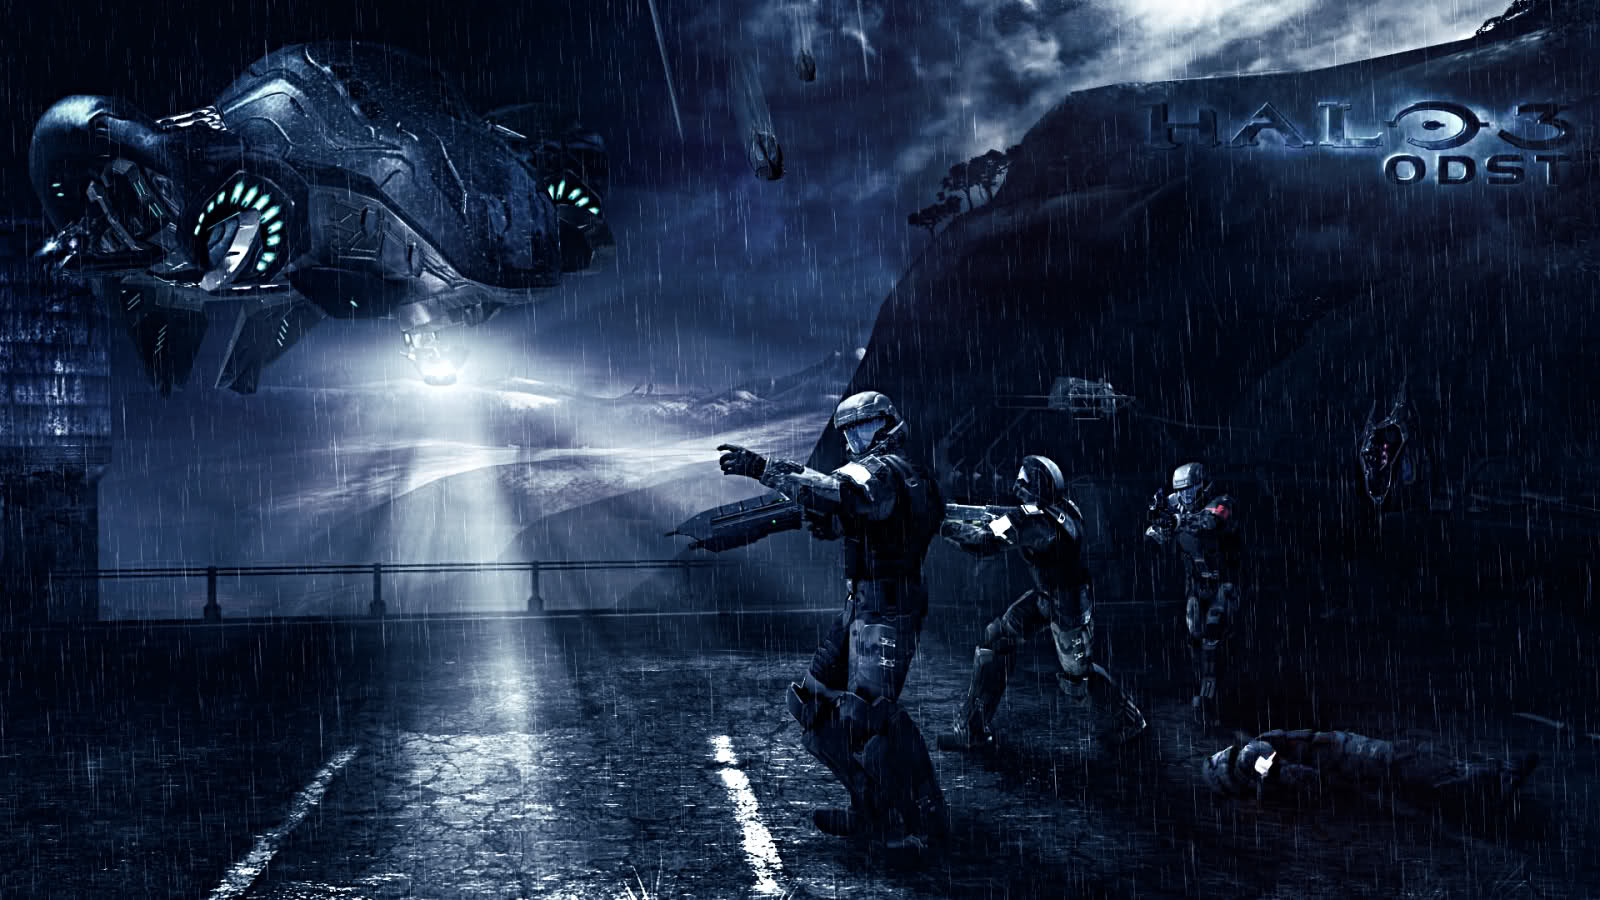 Image halo 3 odst wallpaper 2g halo university wiki fandom halo 3 odst wallpaper 2g publicscrutiny Image collections